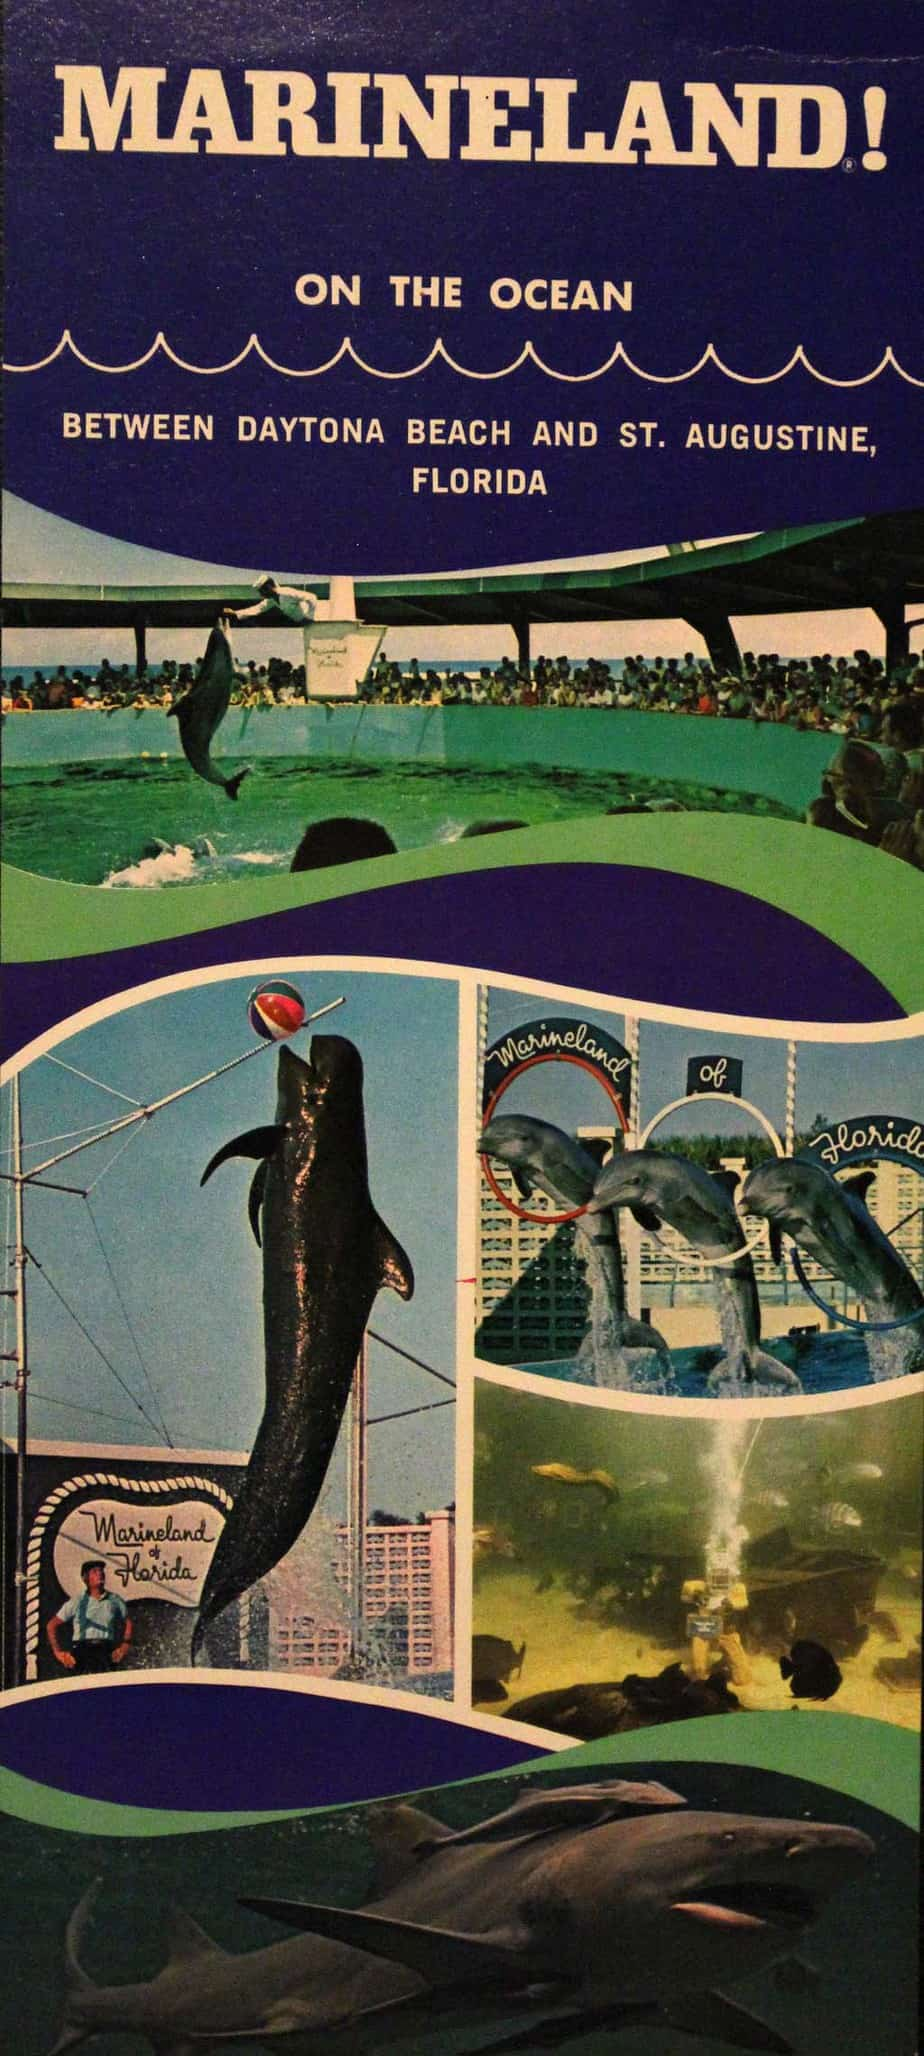 An old brochure from the Marineland Florida attraction during its heyday.